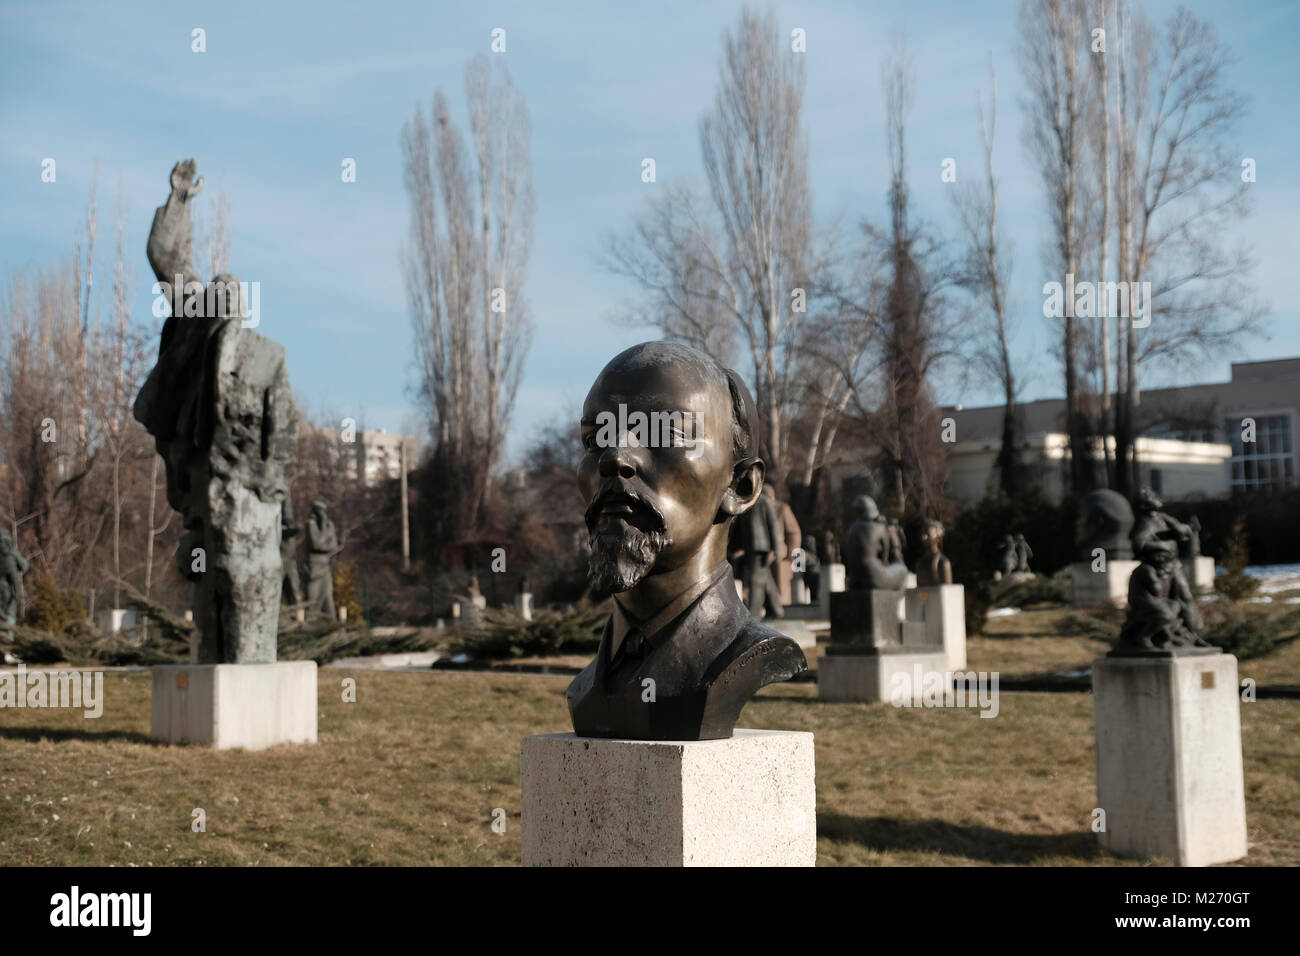 The bust of Vladimir Lenin stands amid sculpture installations drawn from the communist period in front of the Museum - Stock Image